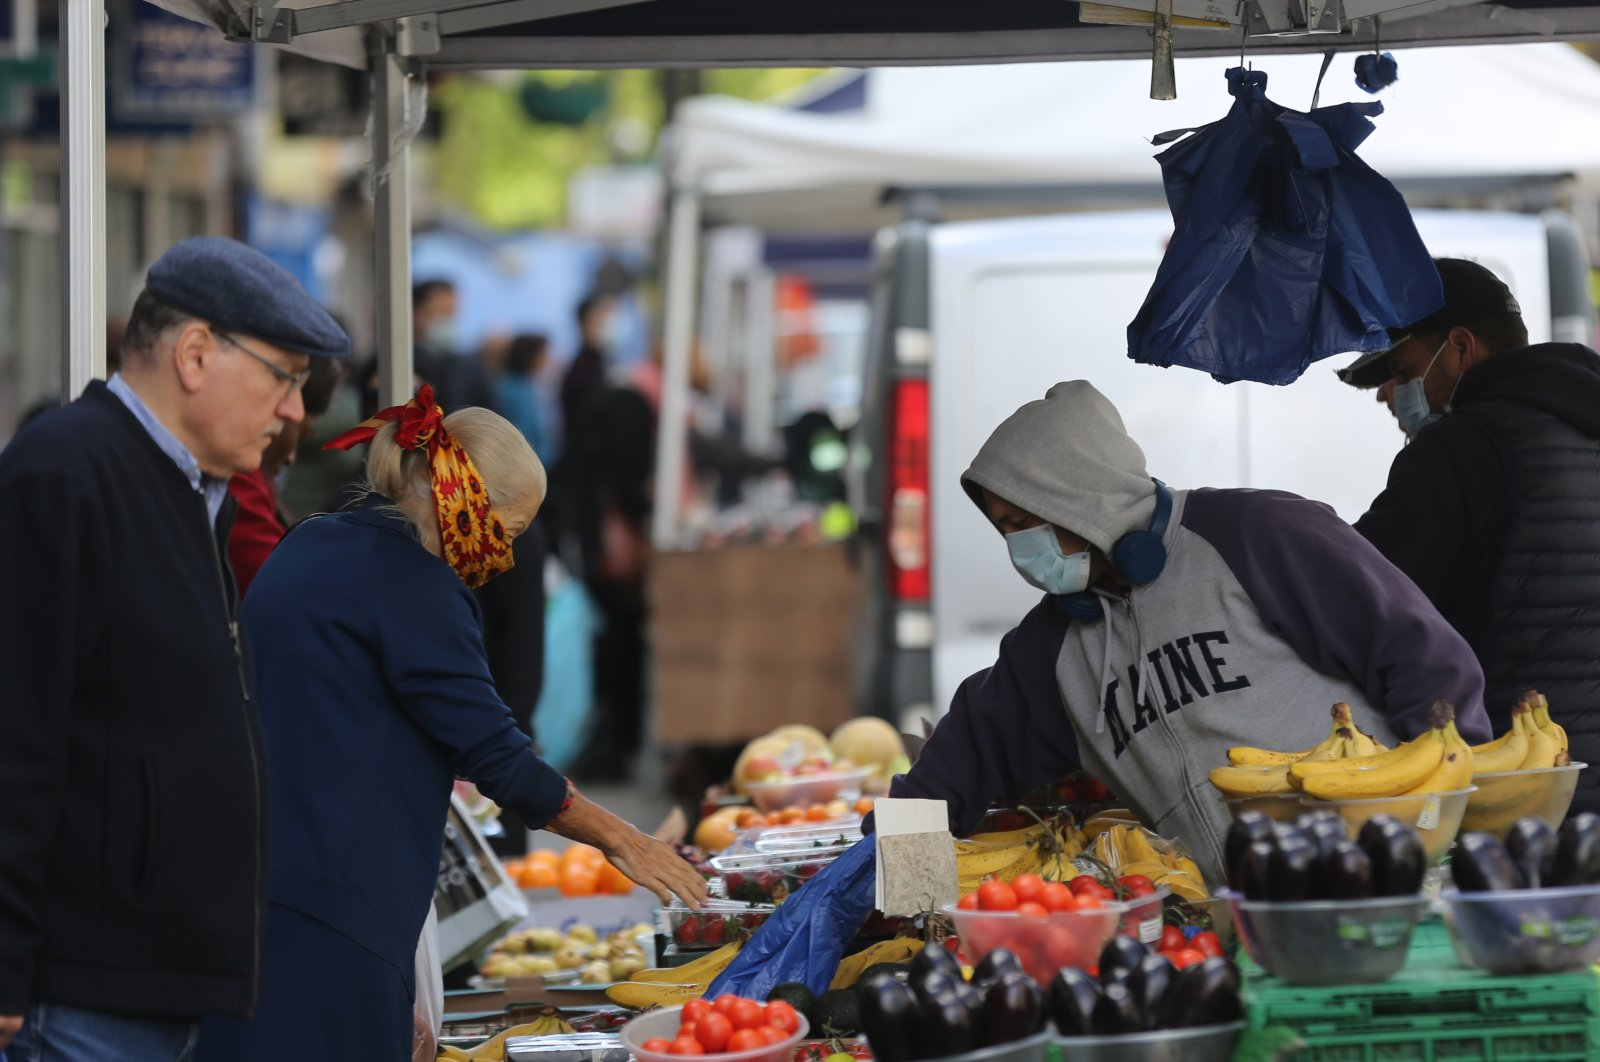 A marketplace serving fruit and vegetables in London, May 2, 2020. (AA Photo)